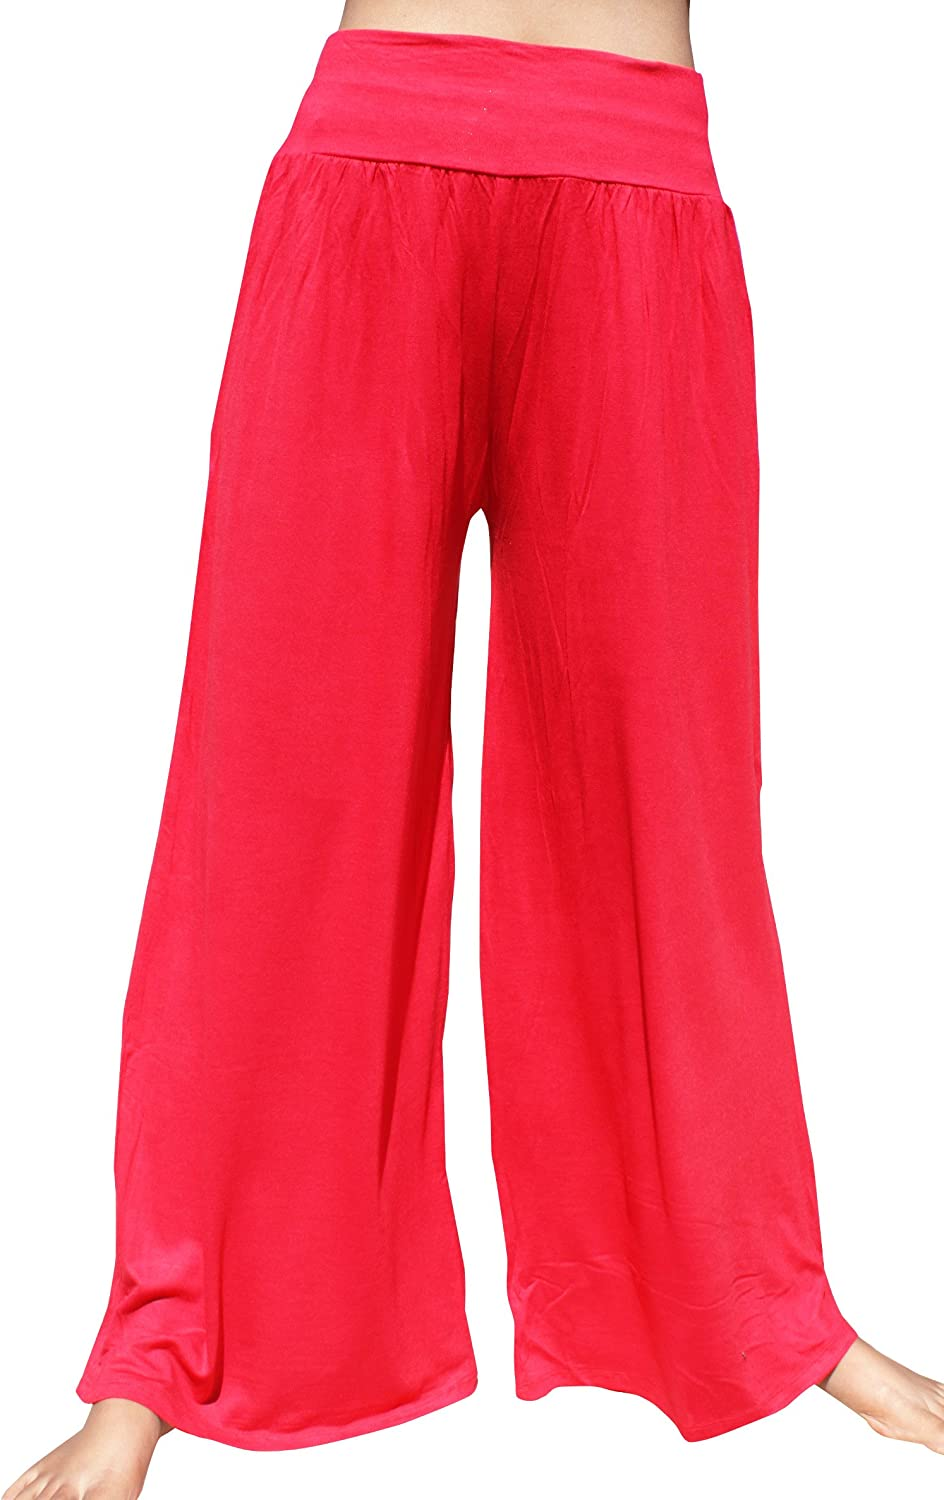 Full Funk 60s Retro Legging Style Thick Spandex Wide Flared Leg Pants